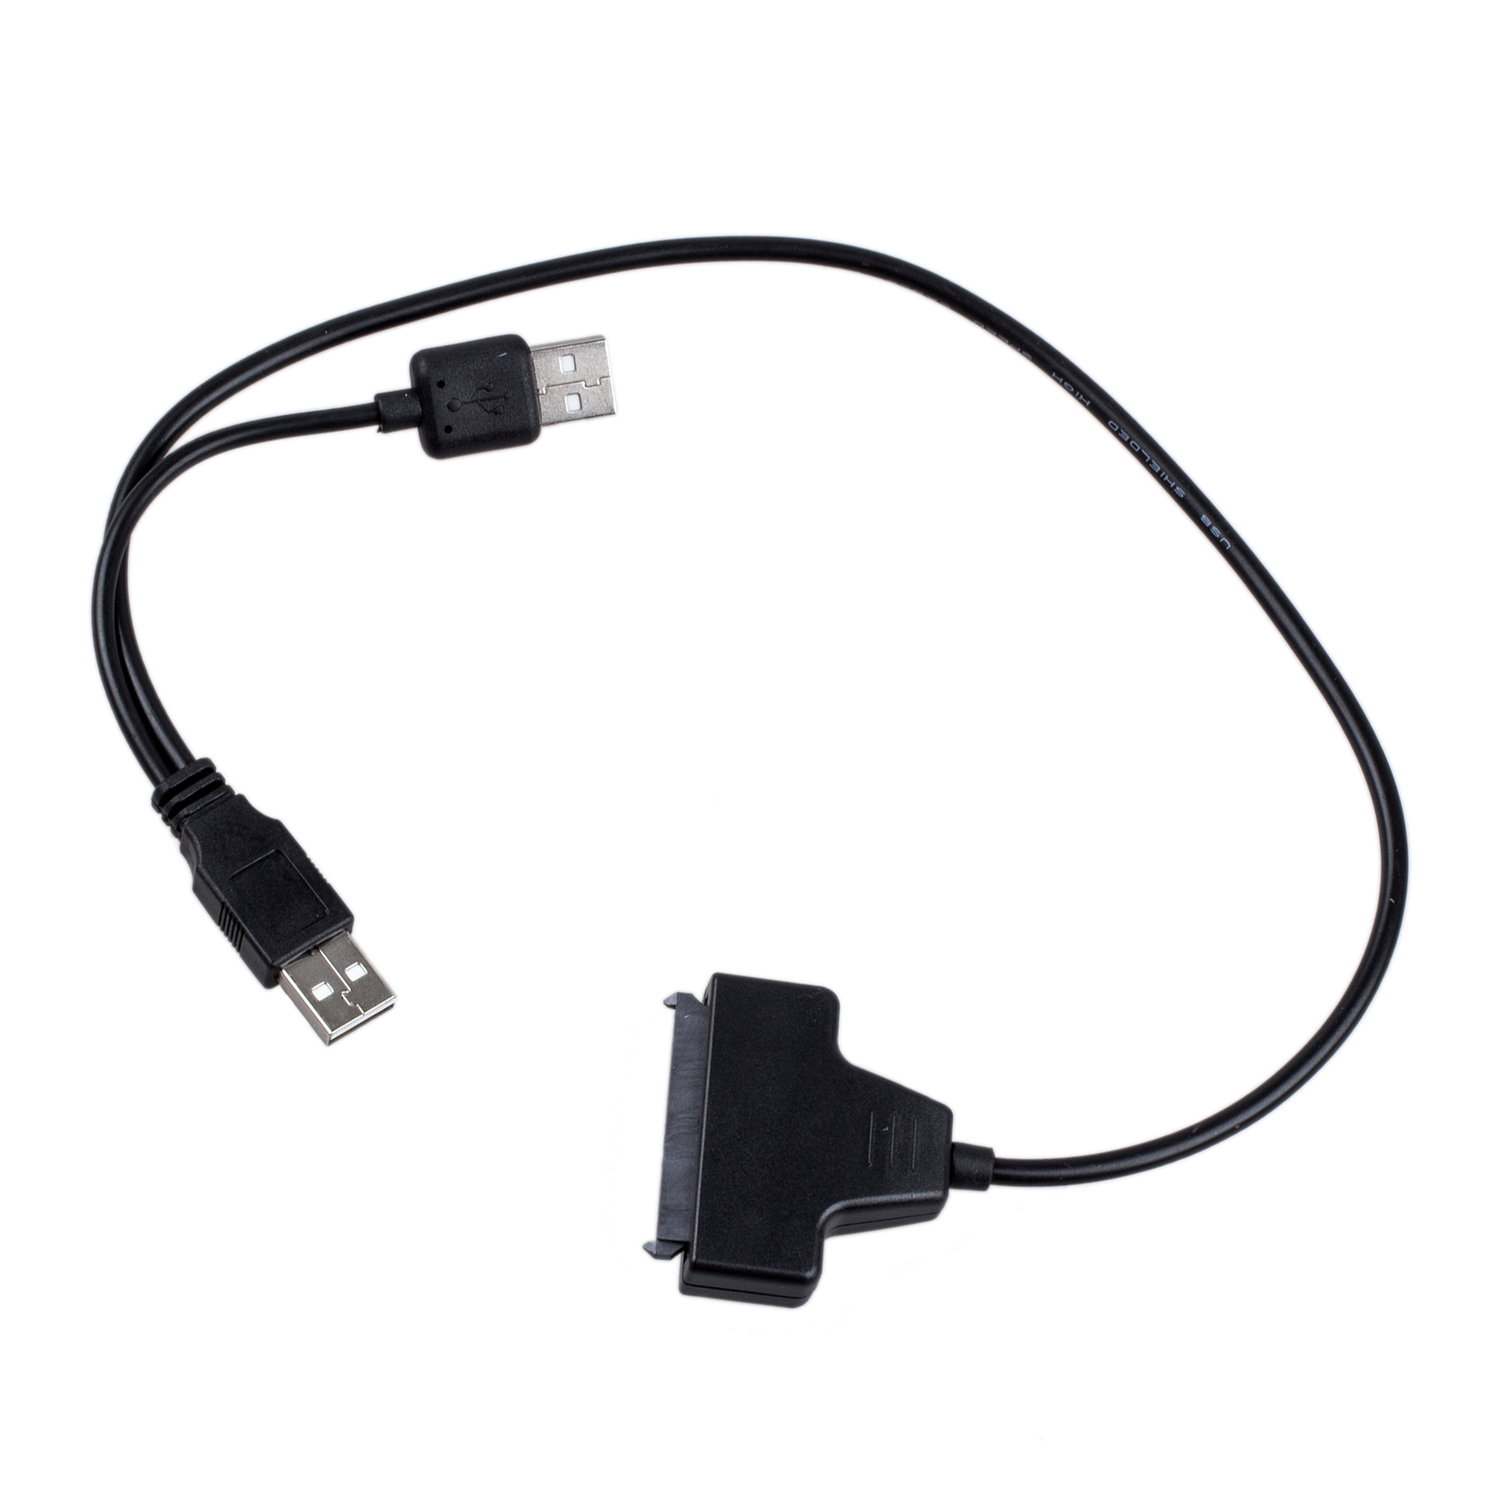 GTFS-New USB 2.0 to SATA Serial ATA 15+7 22P Adapter Cable For 2.5 HDD Laptop Hard Drive